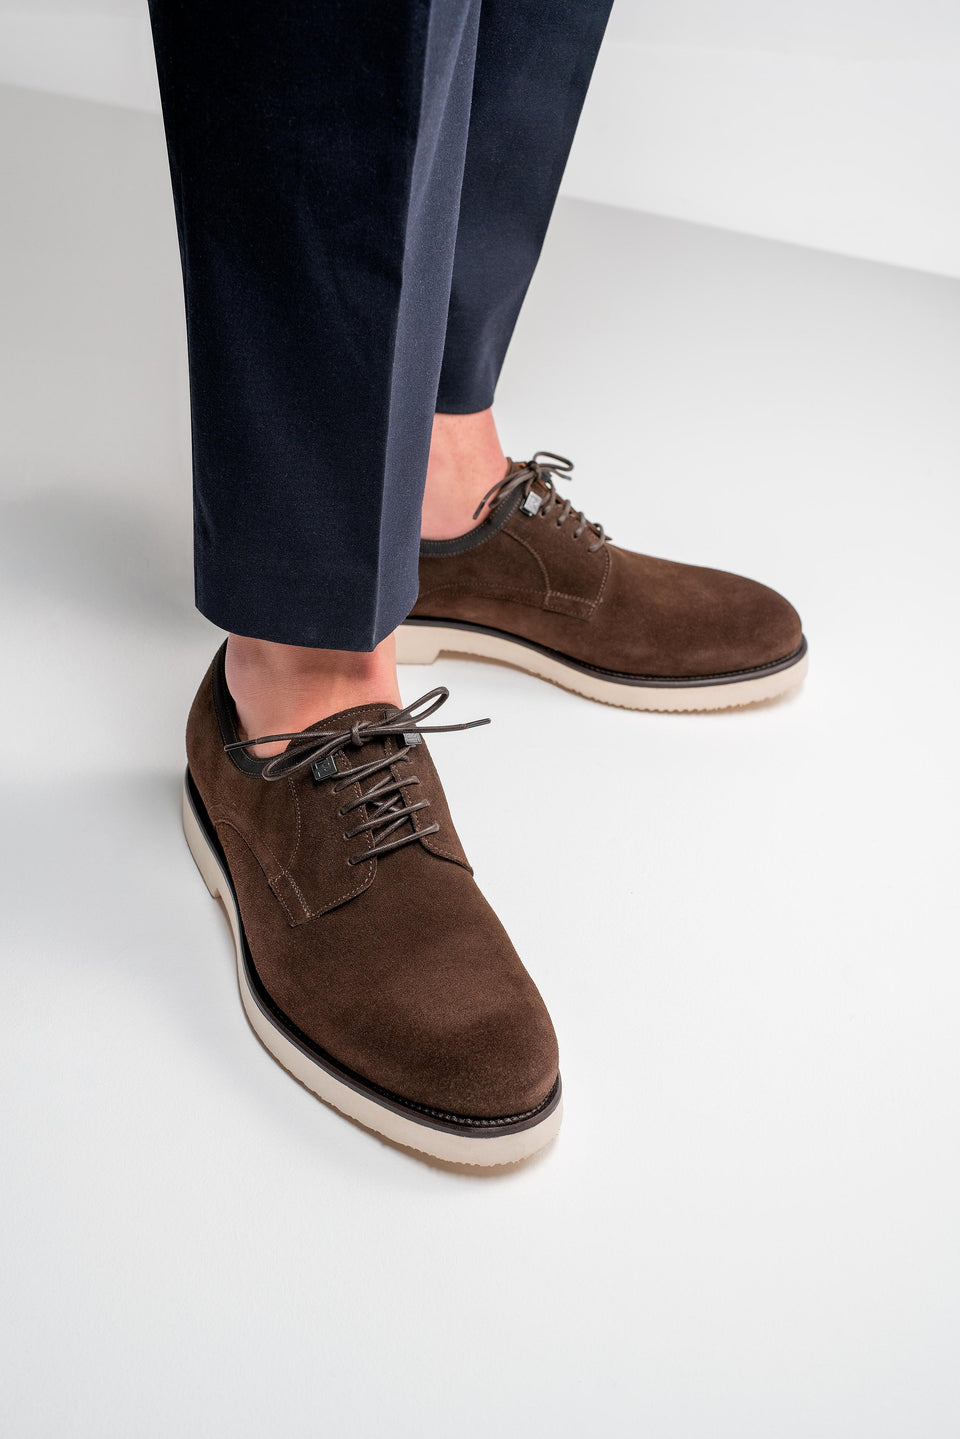 001 - Derby in Dark Brown Suede